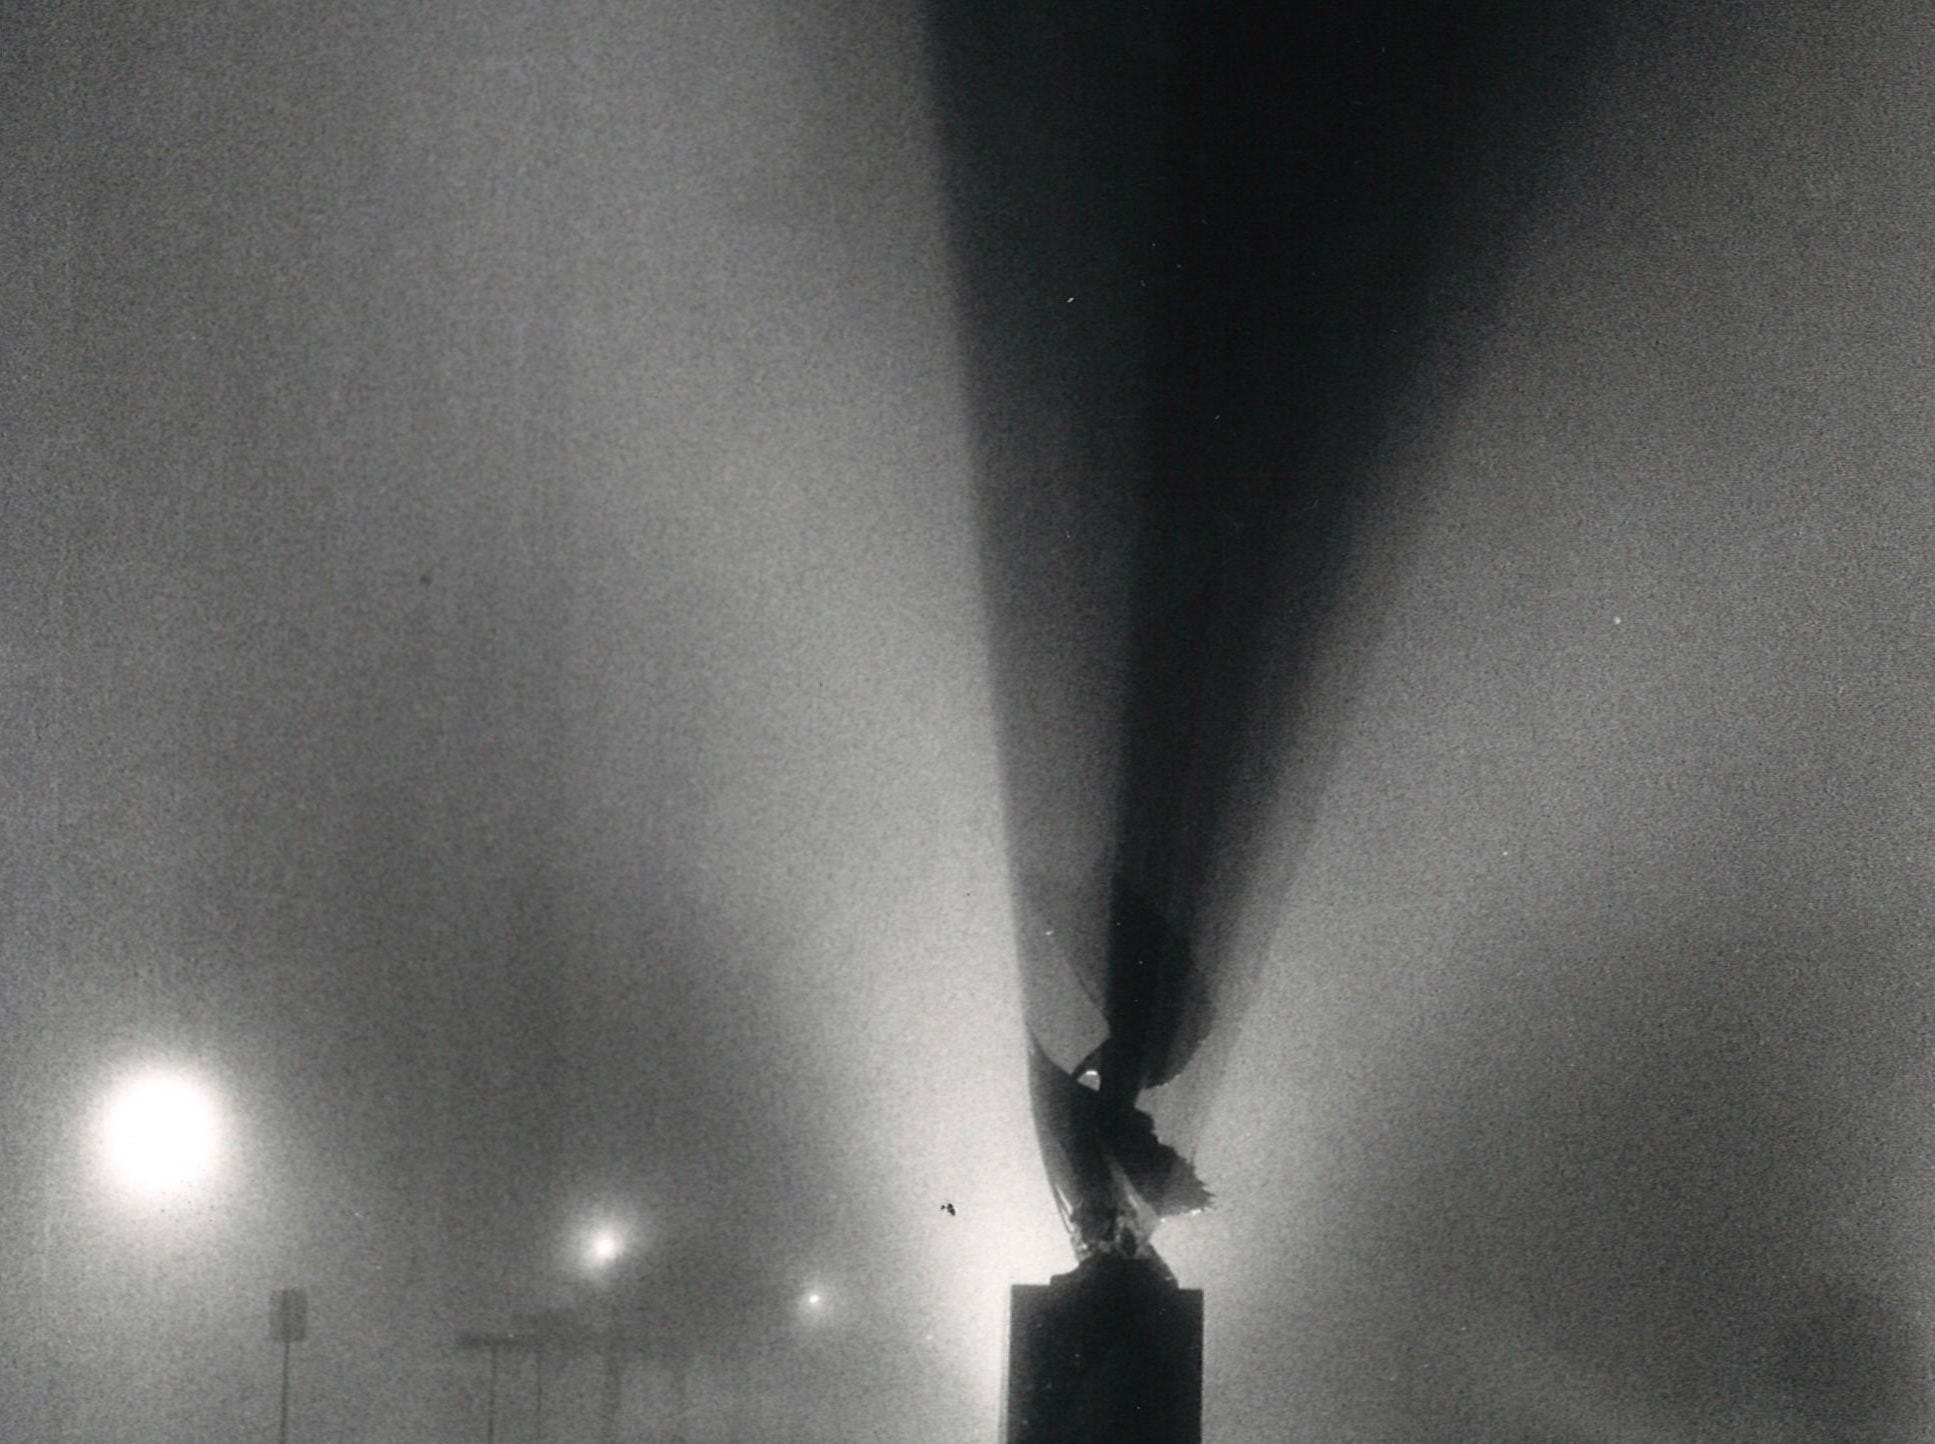 "The Kent Ullberg sculpture ""Wind in the Sails"" on Shoreline Blvd in downtown Corpus Christi looks eerie in the evening fog on April 1, 1988."